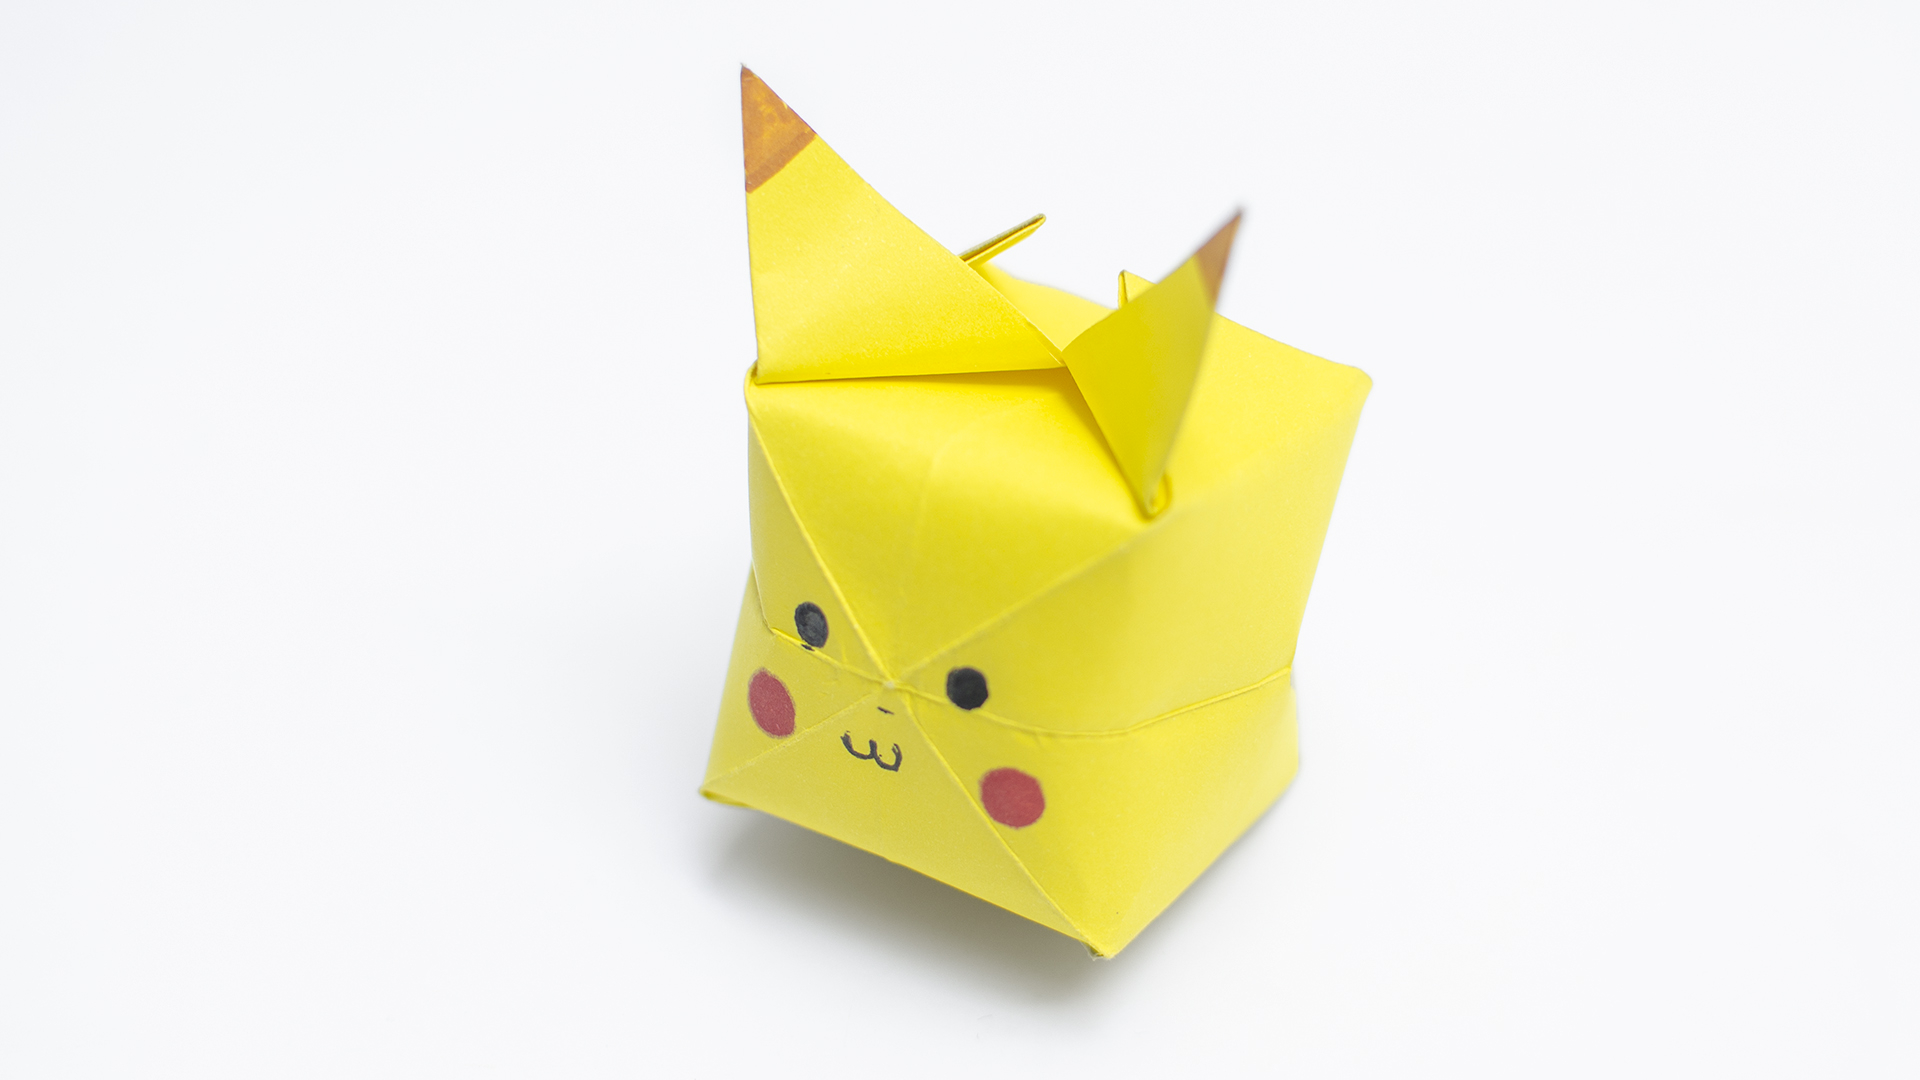 Home crafts you can make with paper How To Make An Origami Pikachu With Pictures Wikihow